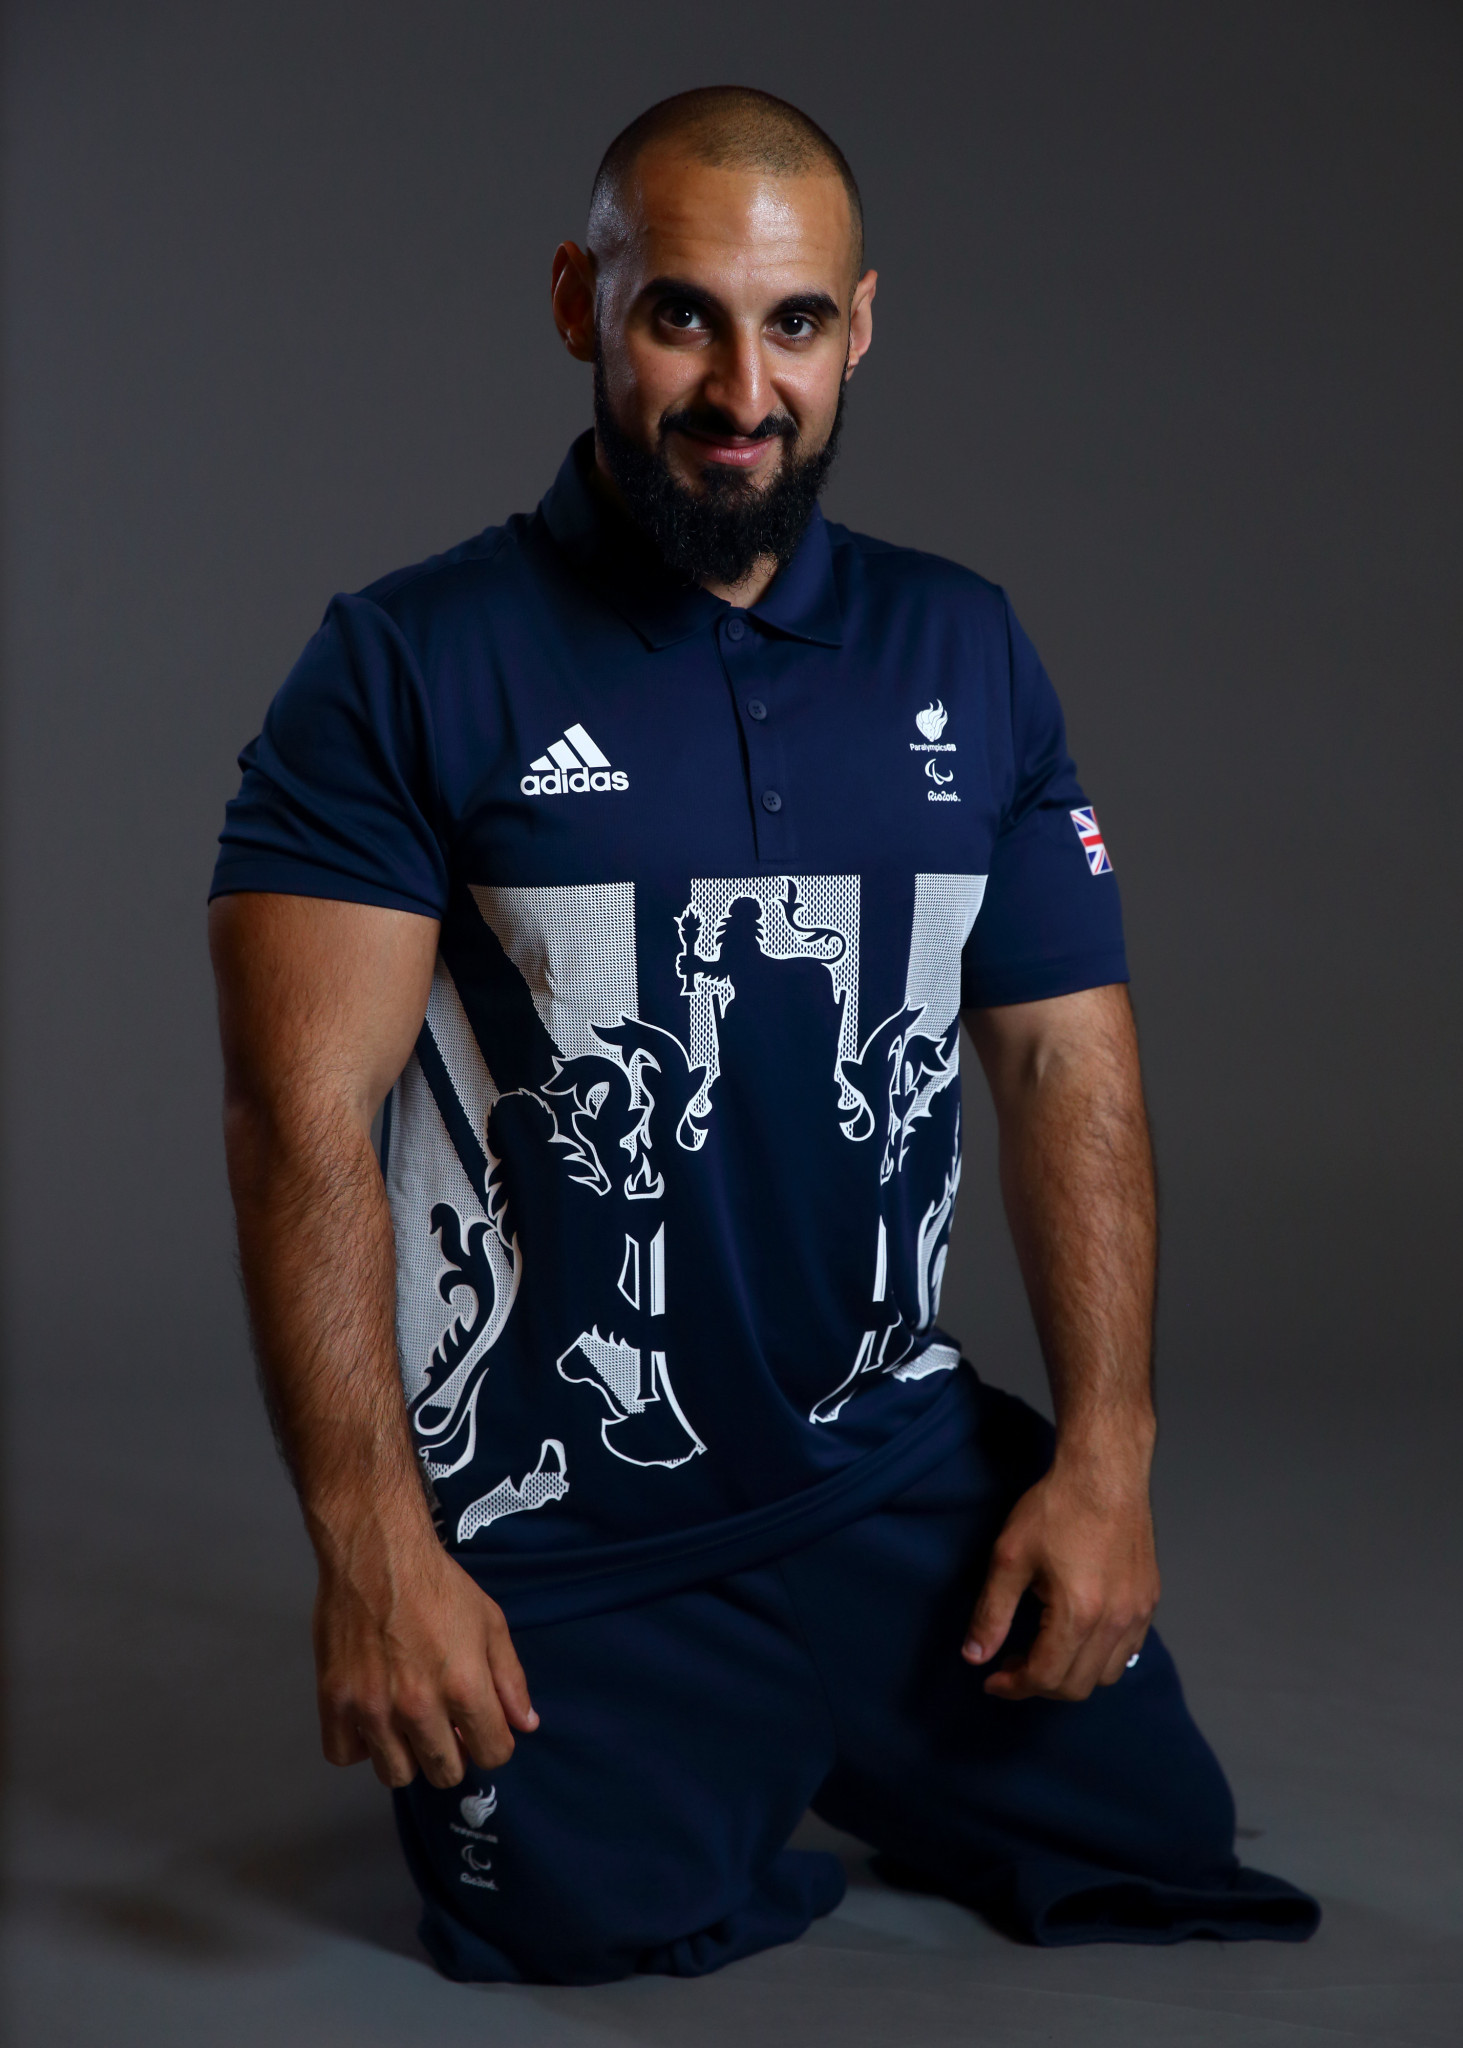 Great Britain's Ali Jawad is joined by Nigeria's Lucy Ejike and Egypt's Sherif Osman as the three powerlifting candidates for in line to become the World Para Powerlifting Athlete Representative ©Getty Images